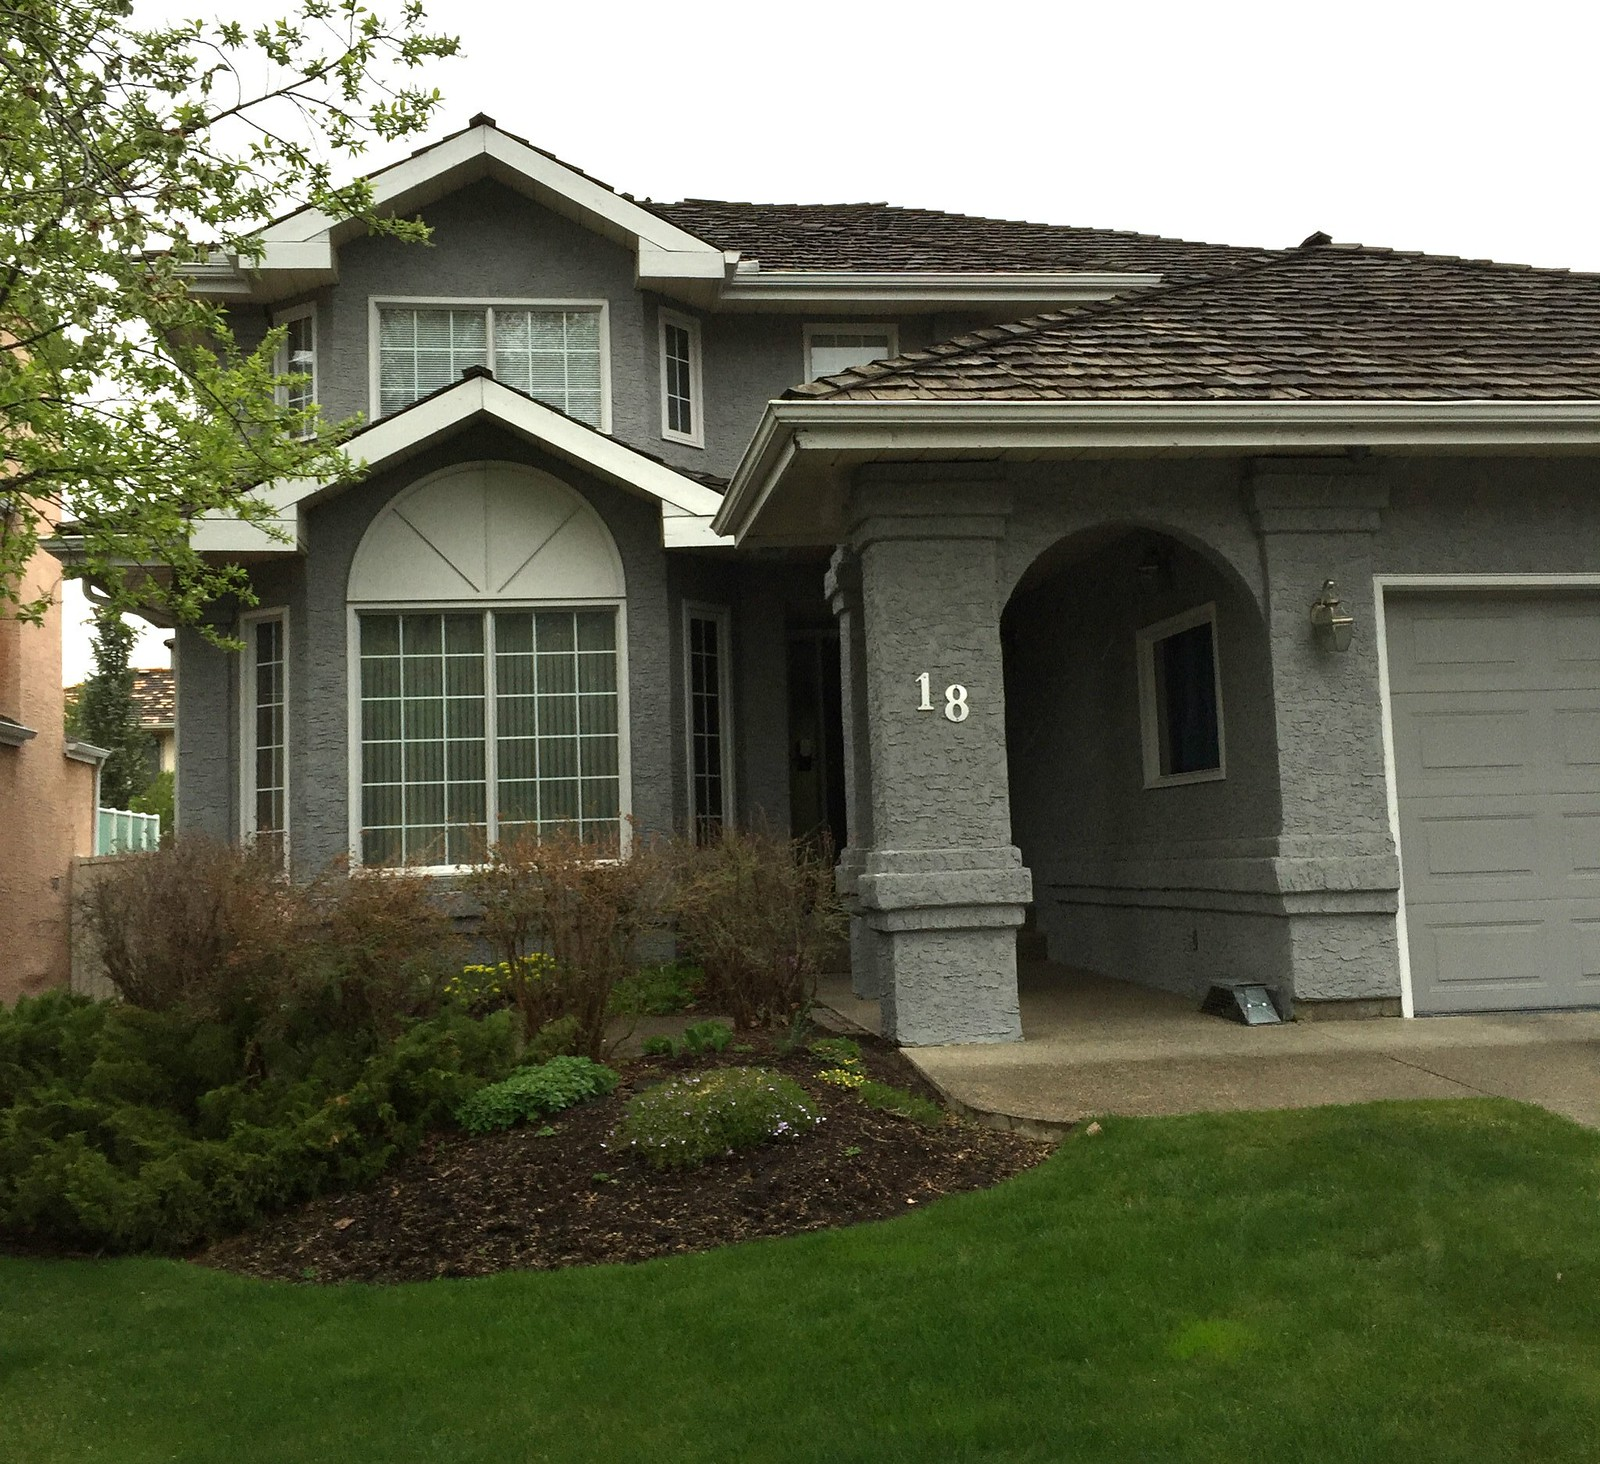 stucco home that has been painted to a modern grey